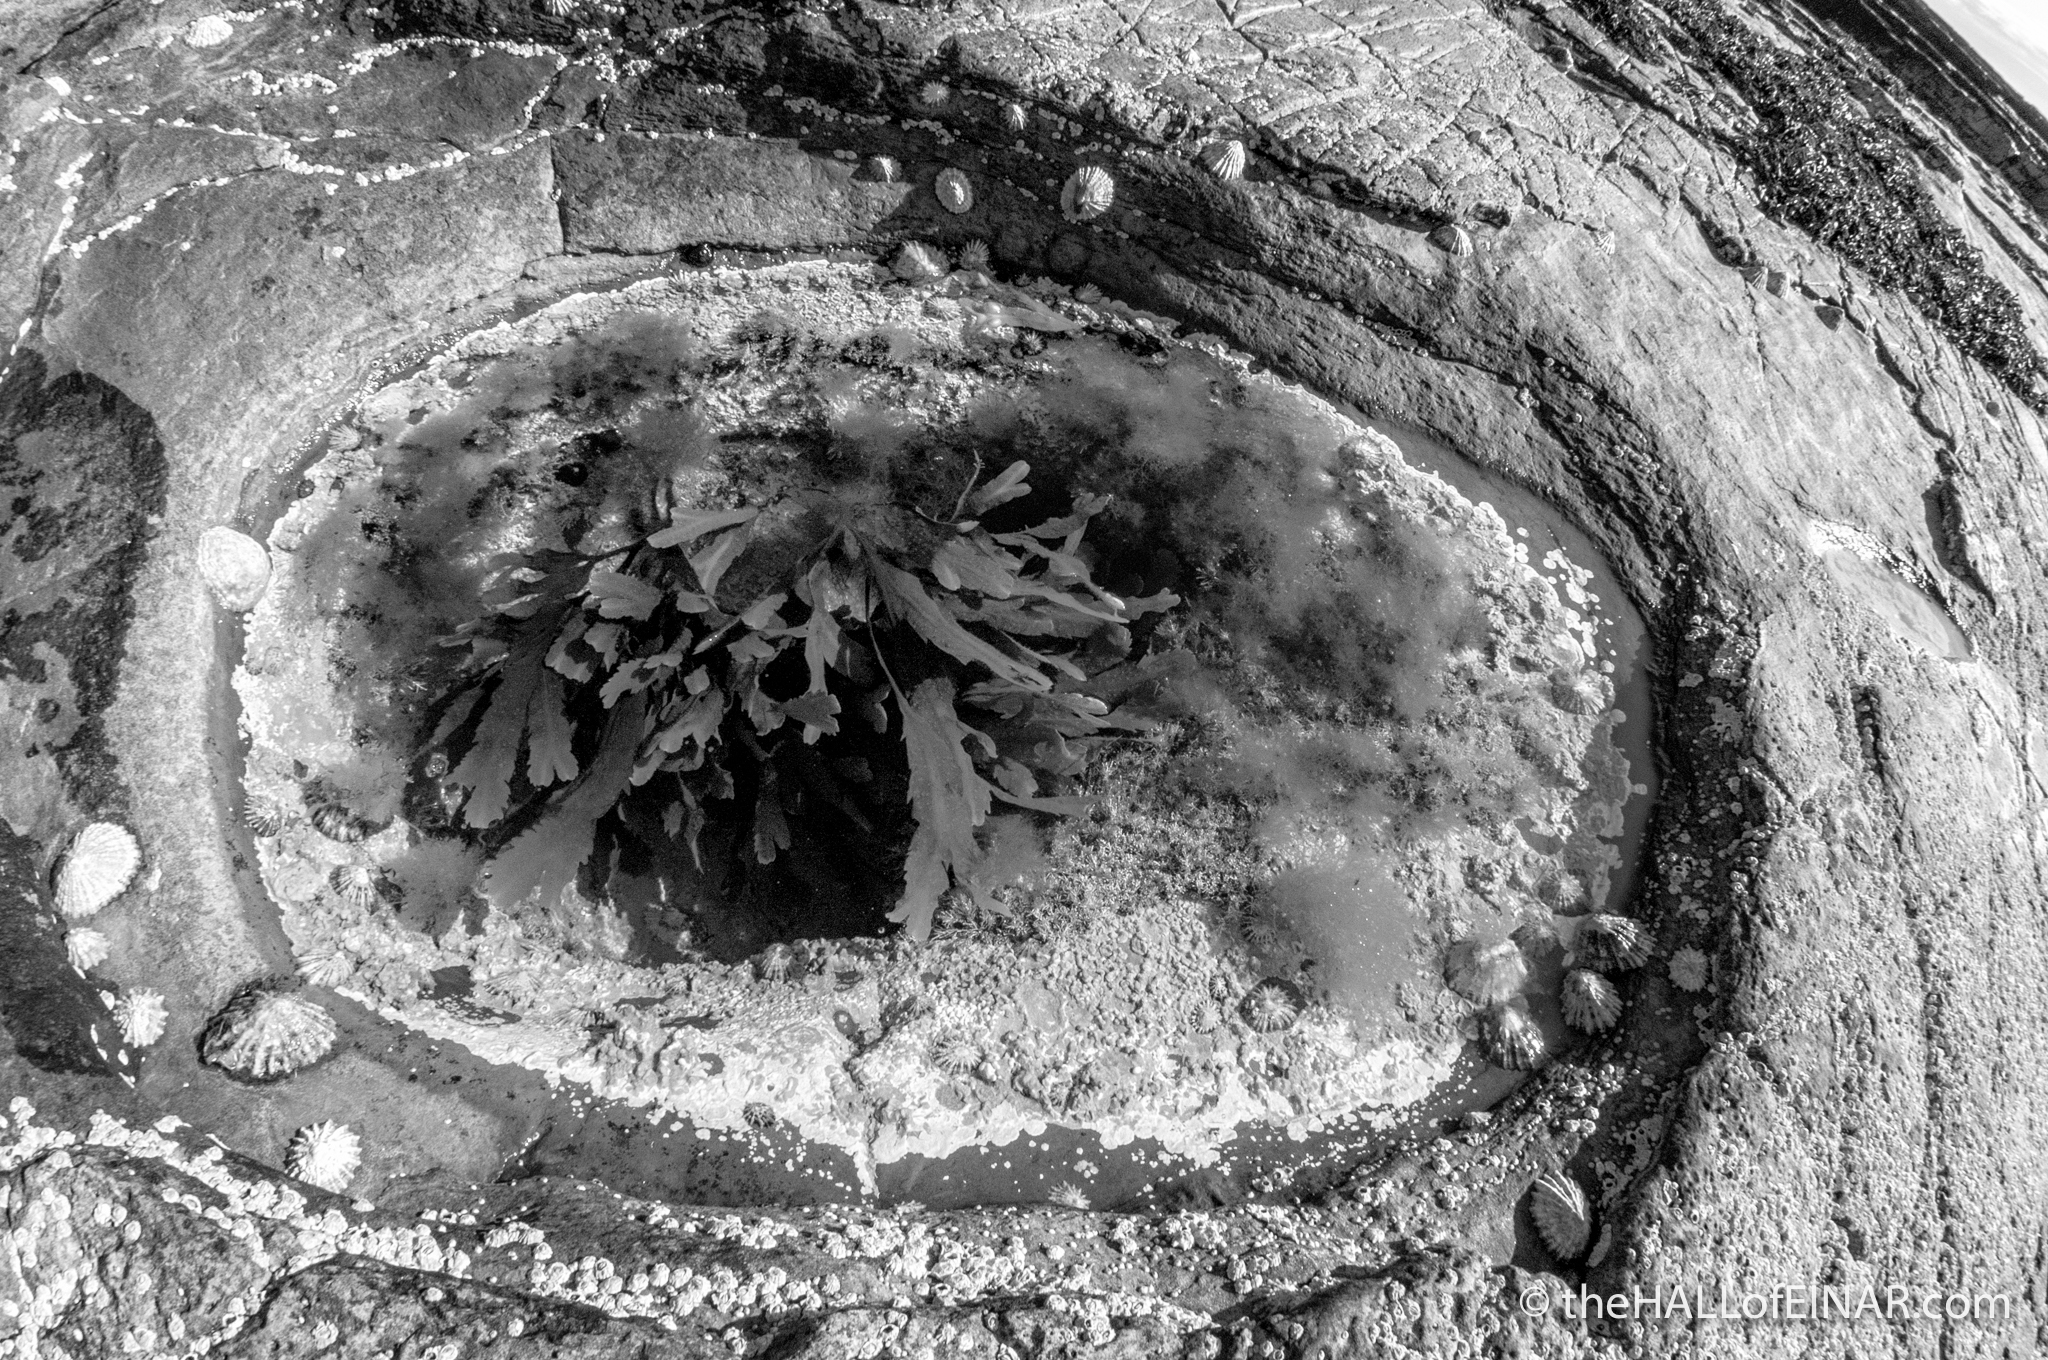 Lost in a rock pool - The Hall of Einar - photograph (c) David Bailey (not the)